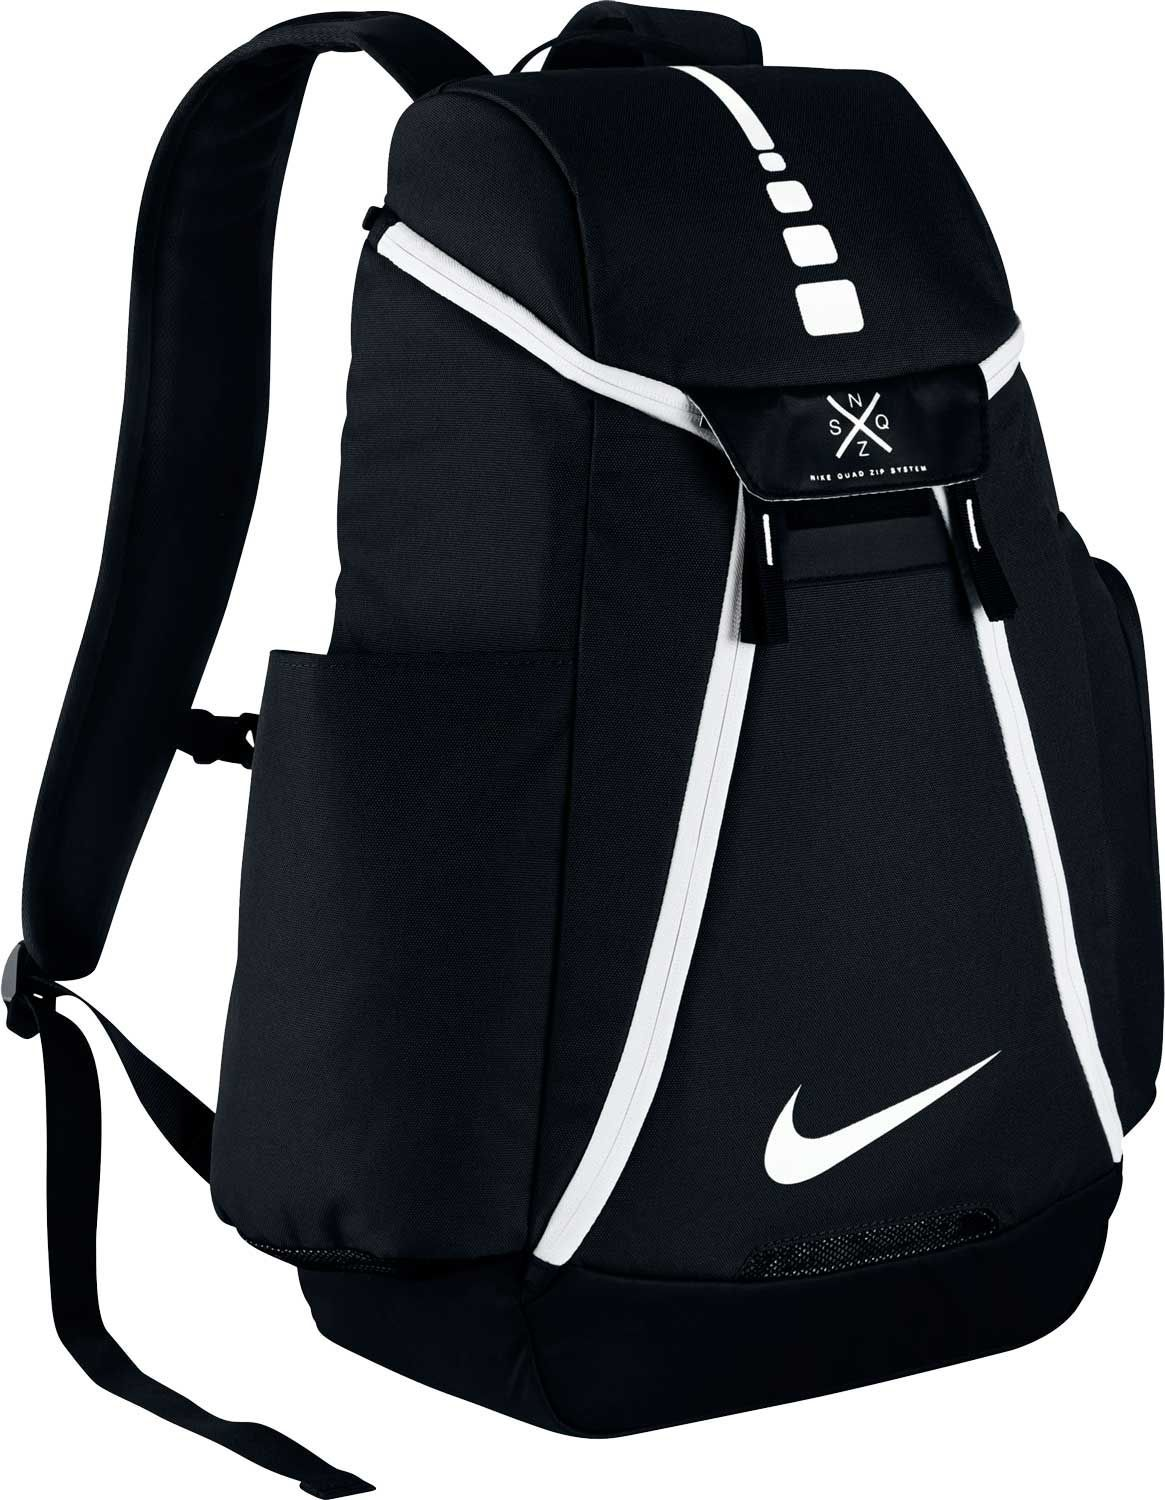 2 Elite 0 Air BackpackBlackMochilas Max Team Nike Hoops PXikuOTZ